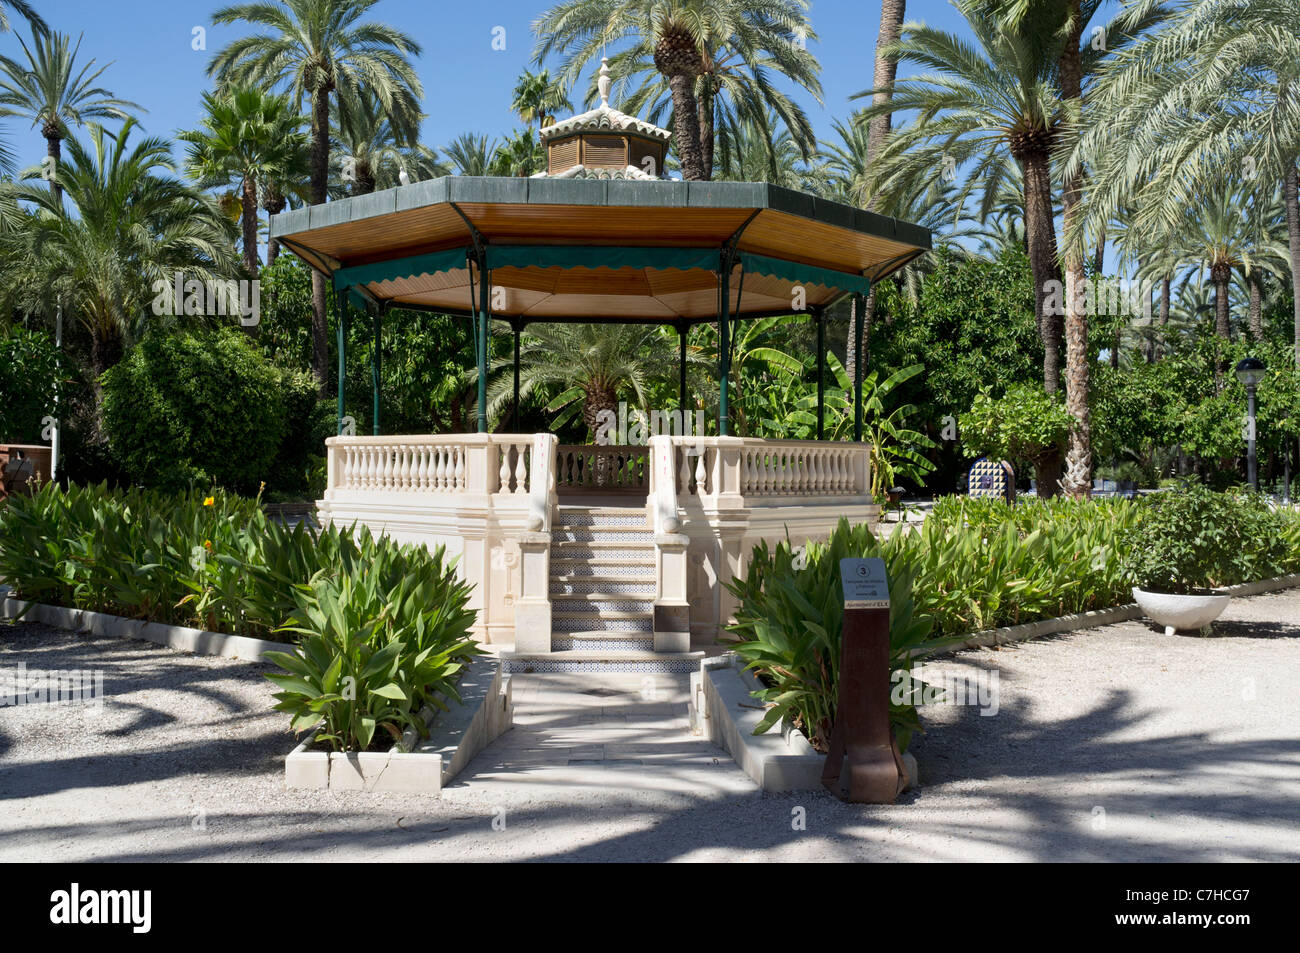 Bandstand in Municipal Park, Elche Spain - Stock Image